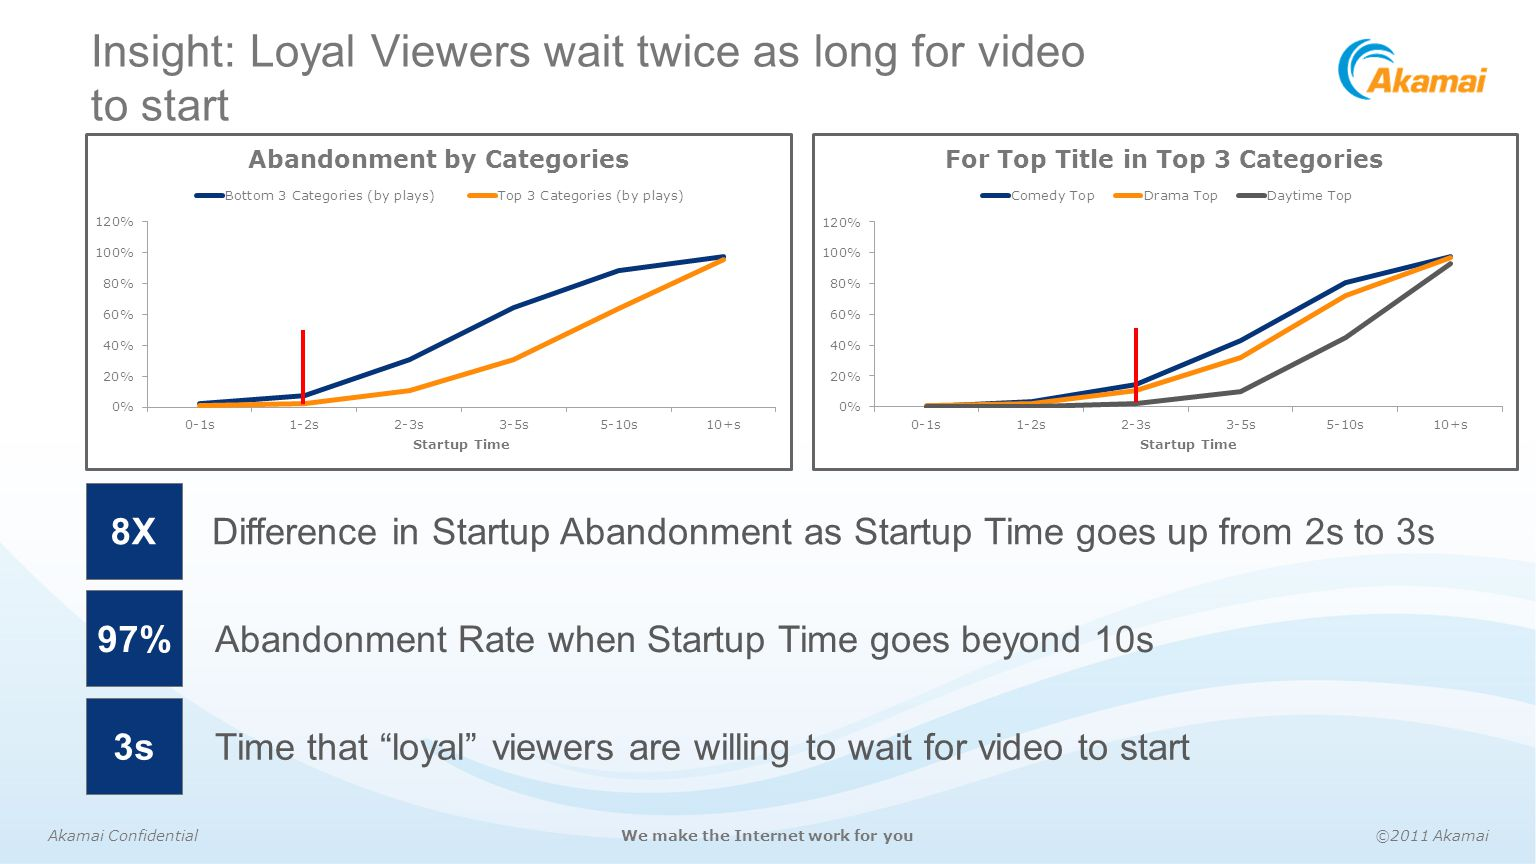 Insight: Loyal Viewers wait twice as long for video to start